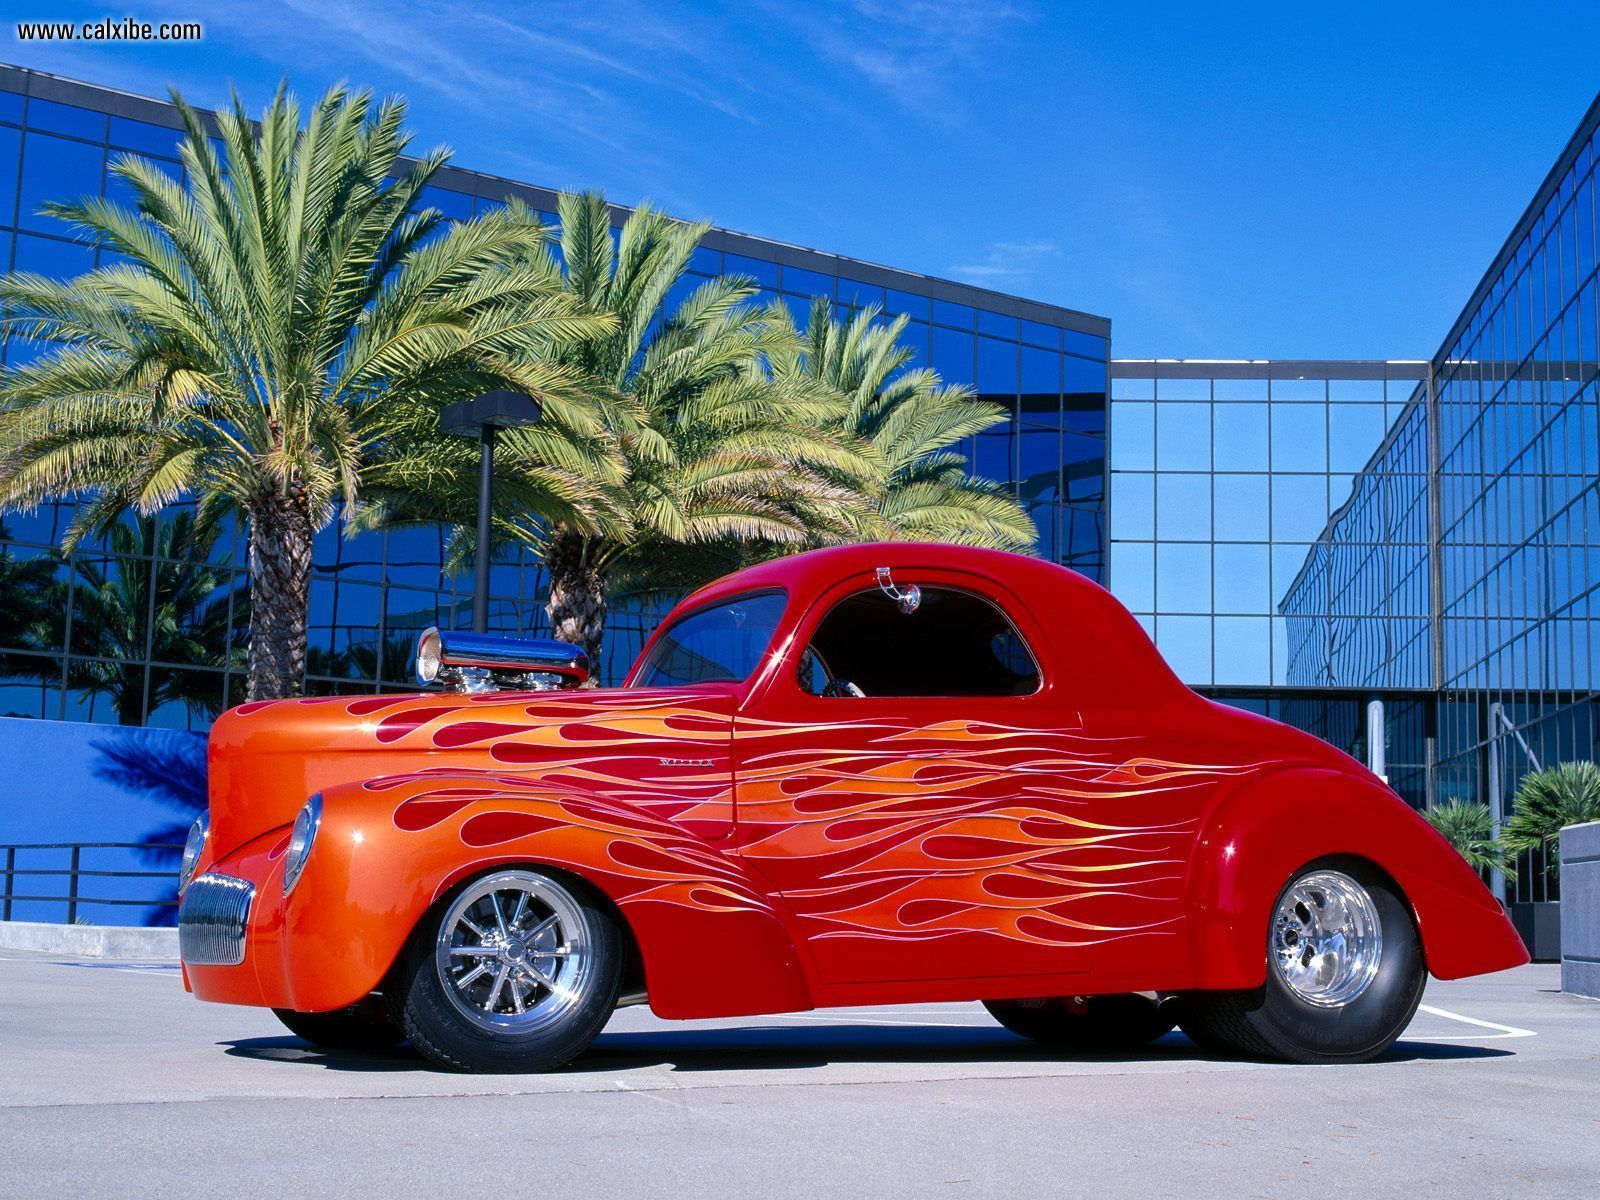 Topworldauto Photos Of Willys Pro Street Coupe Photo Galleries 1941 Plymouth Cars Picture Nr 18401